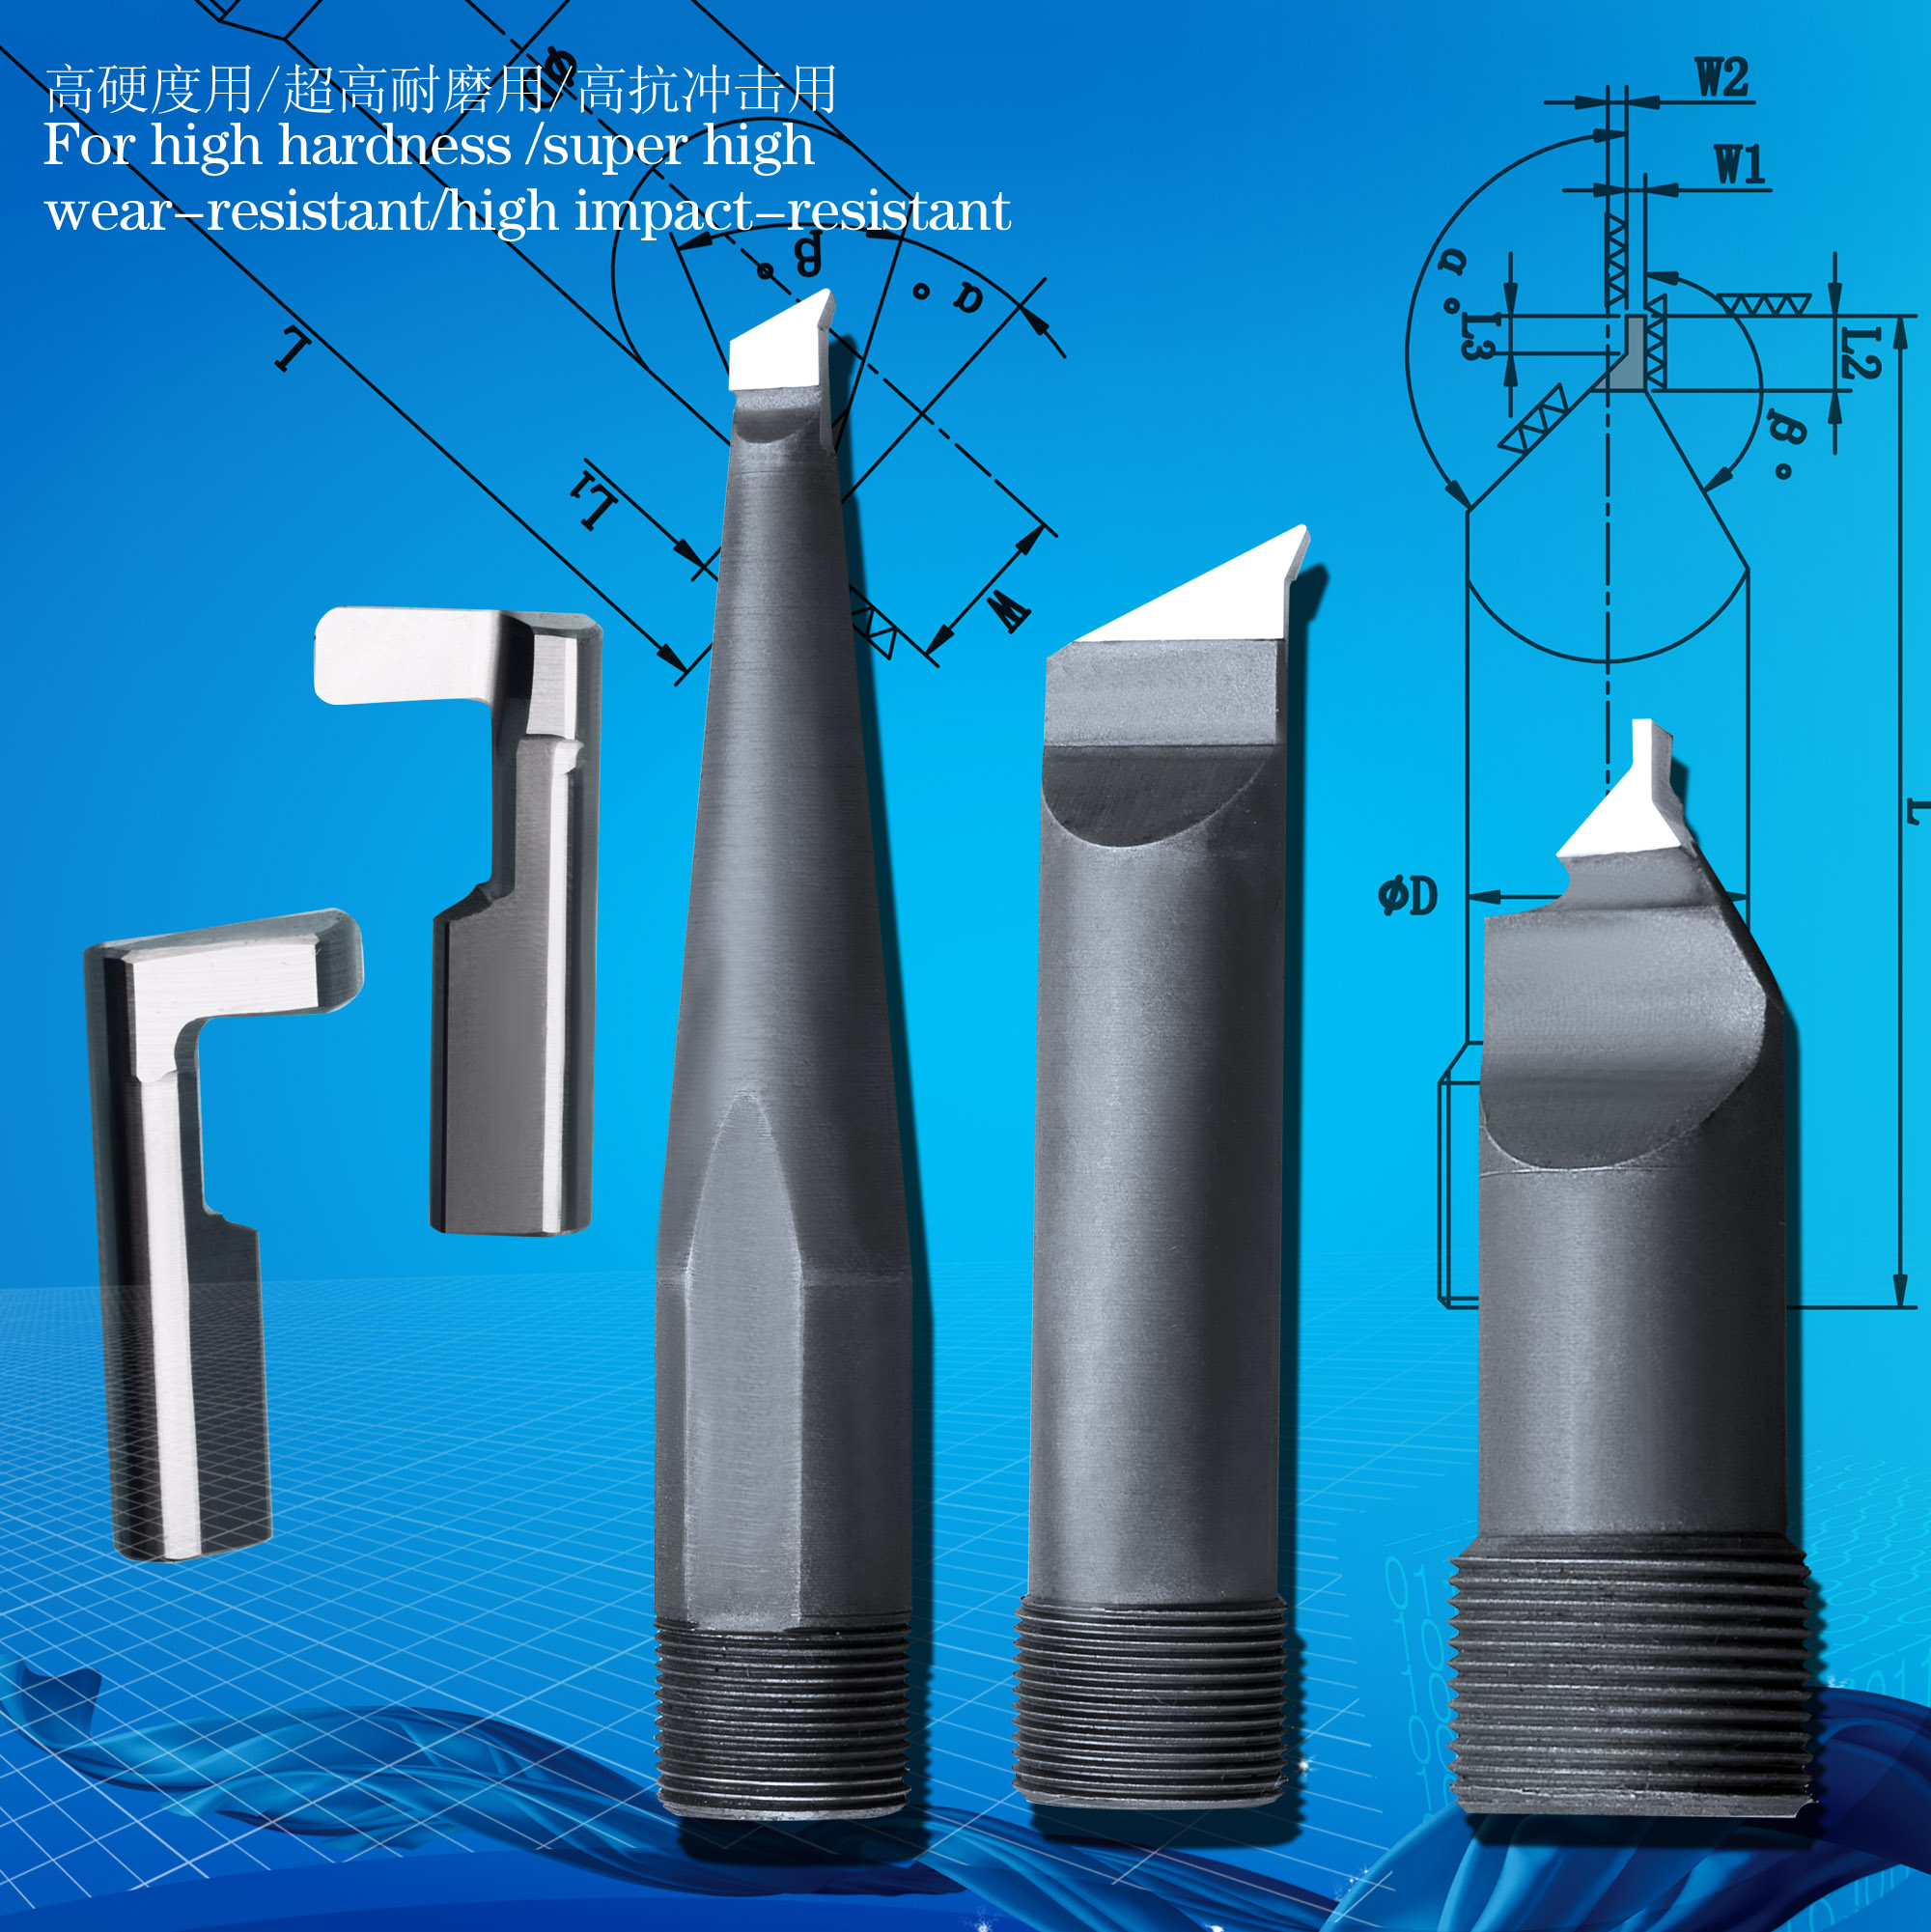 Edge Welding Boring Cutter, Profile Boring Cutter, Welded Type Boring Cutter